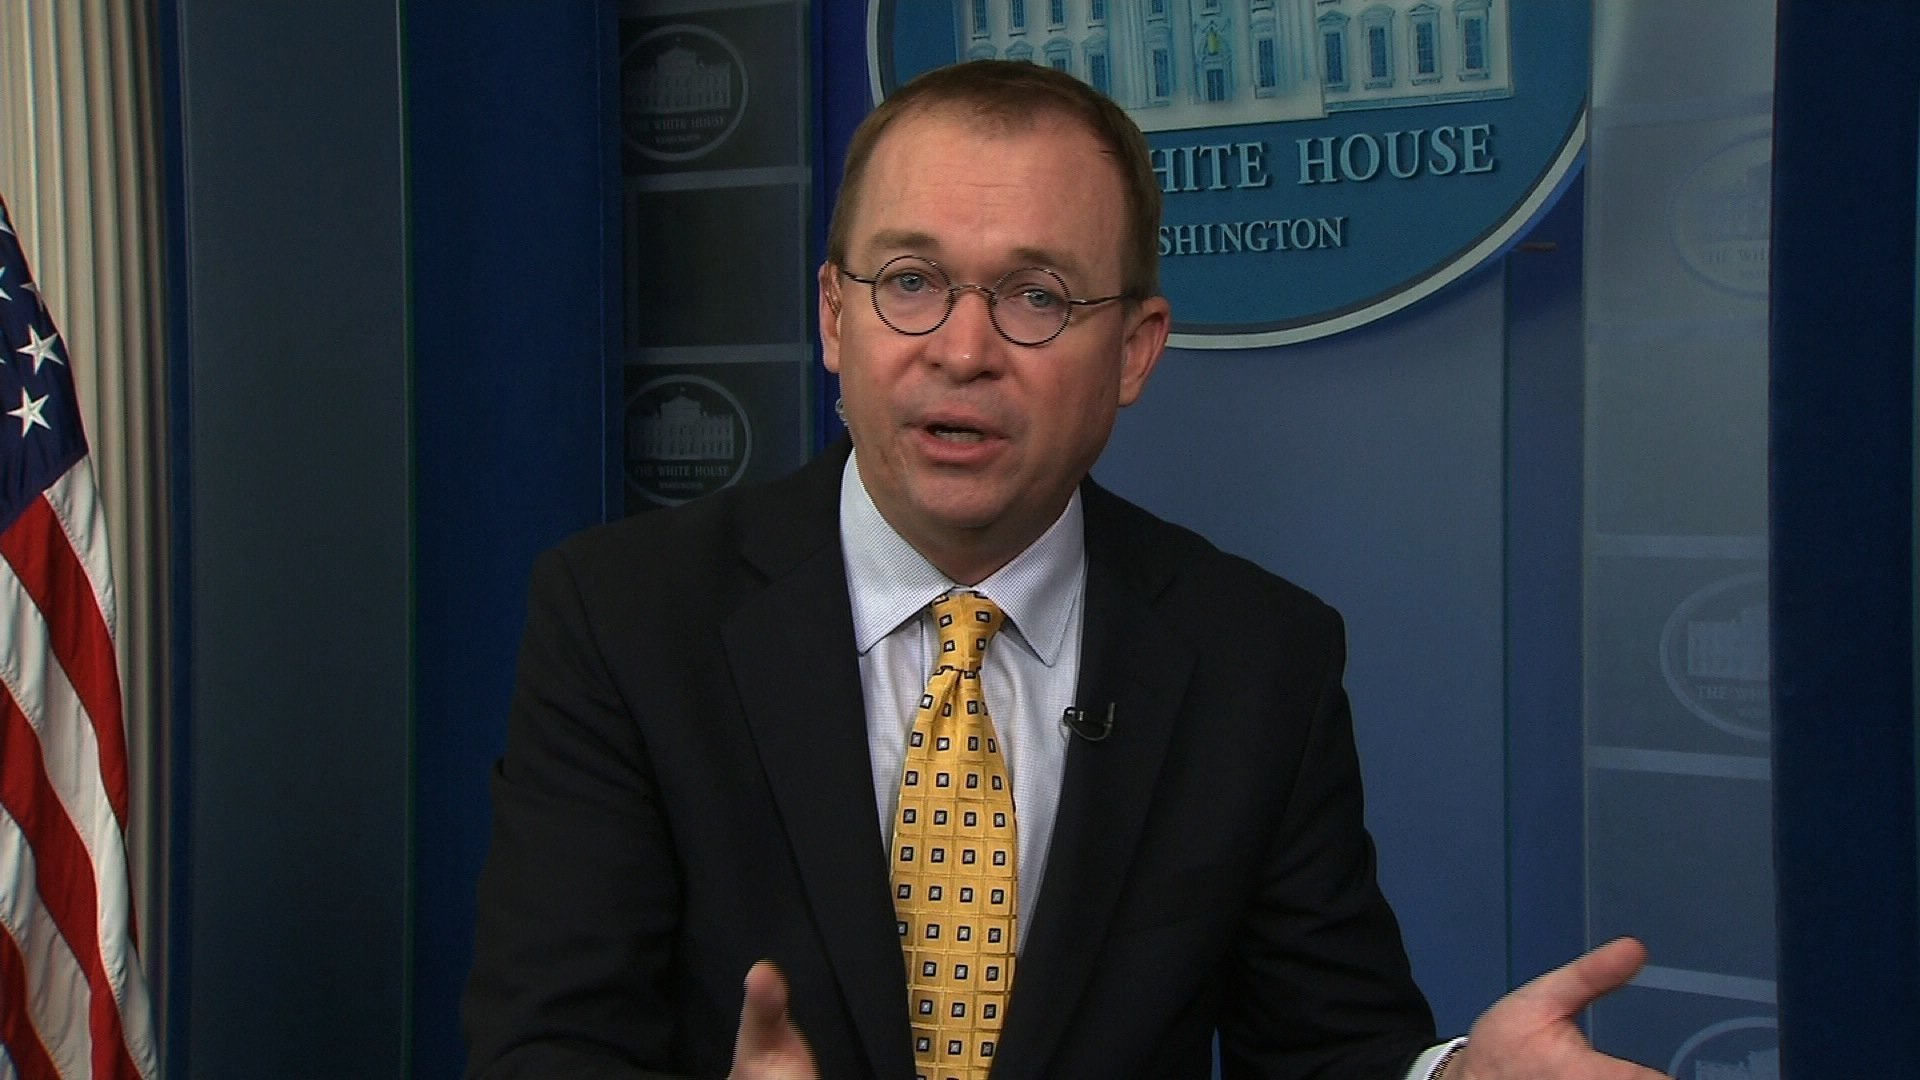 Mick Mulvaney the Acting Director of the Consumer Financial Protection Bureau says he's not trying to destroy the bureau which he once pushed to abolish and now leads